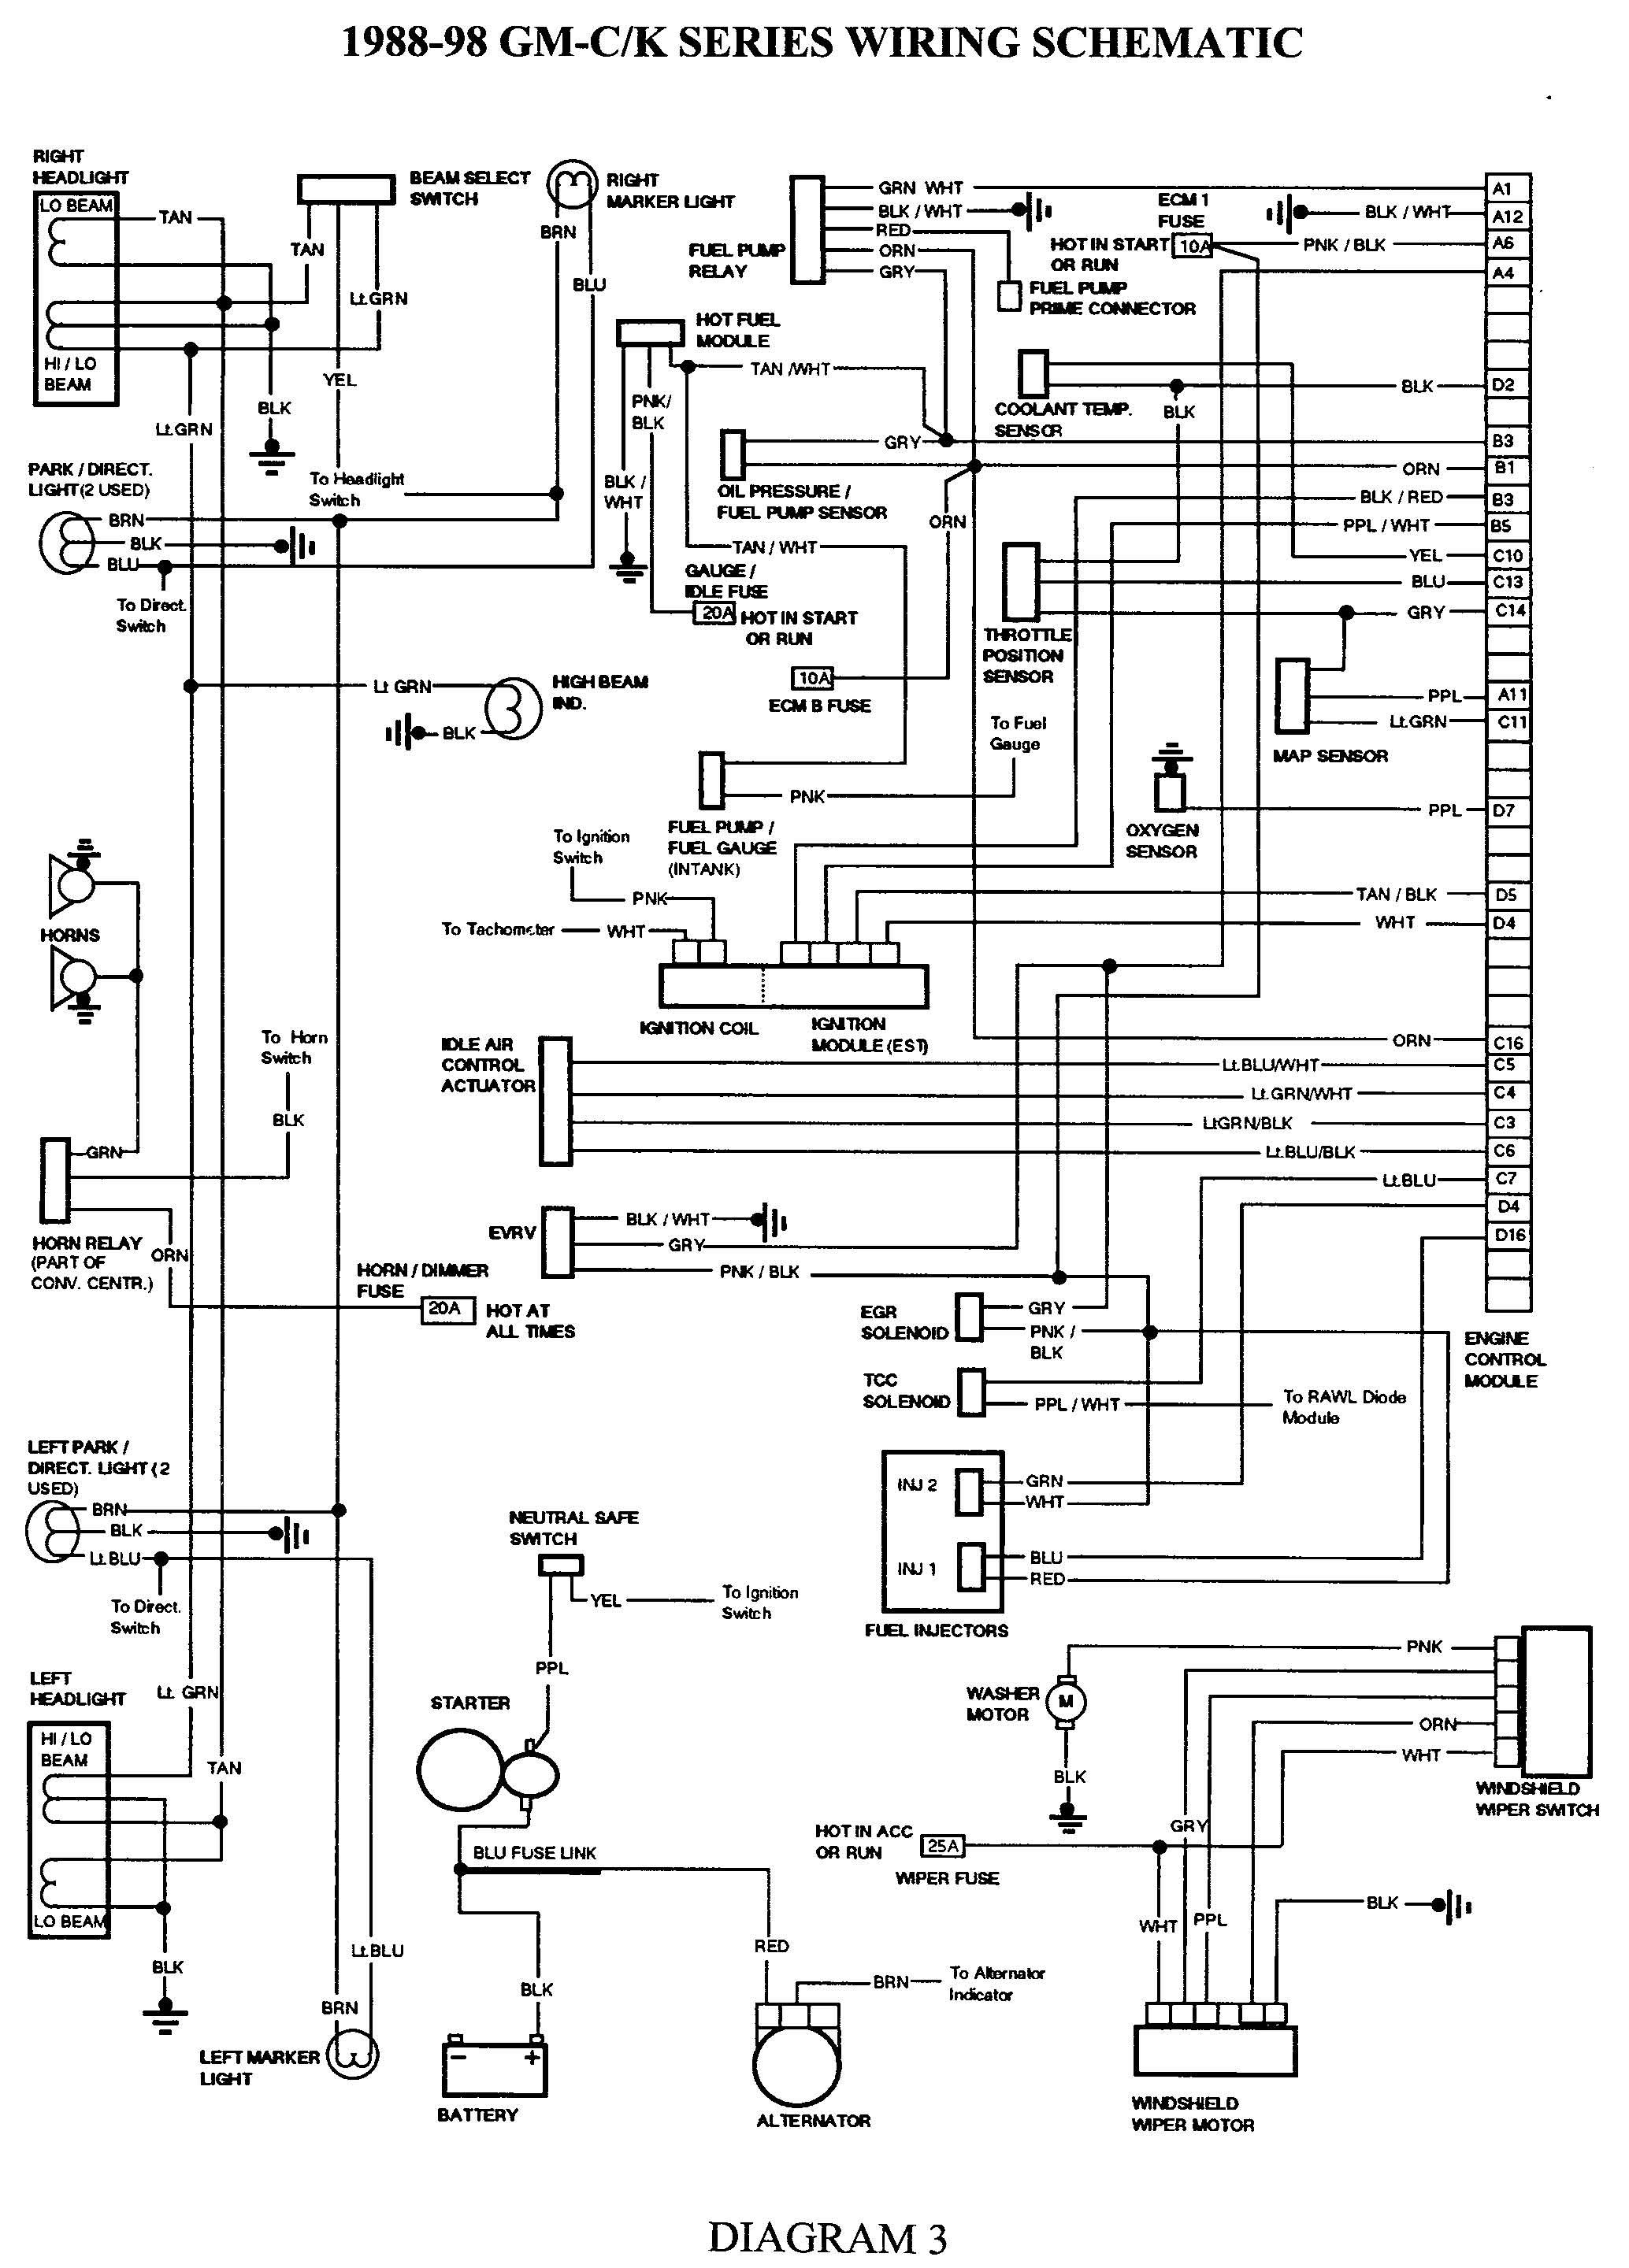 chevy luv ignition wiring wiring diagramwiring diagram tail light wiring diagram chevrolet small blockgmc truck wiring [ 2068 x 2880 Pixel ]